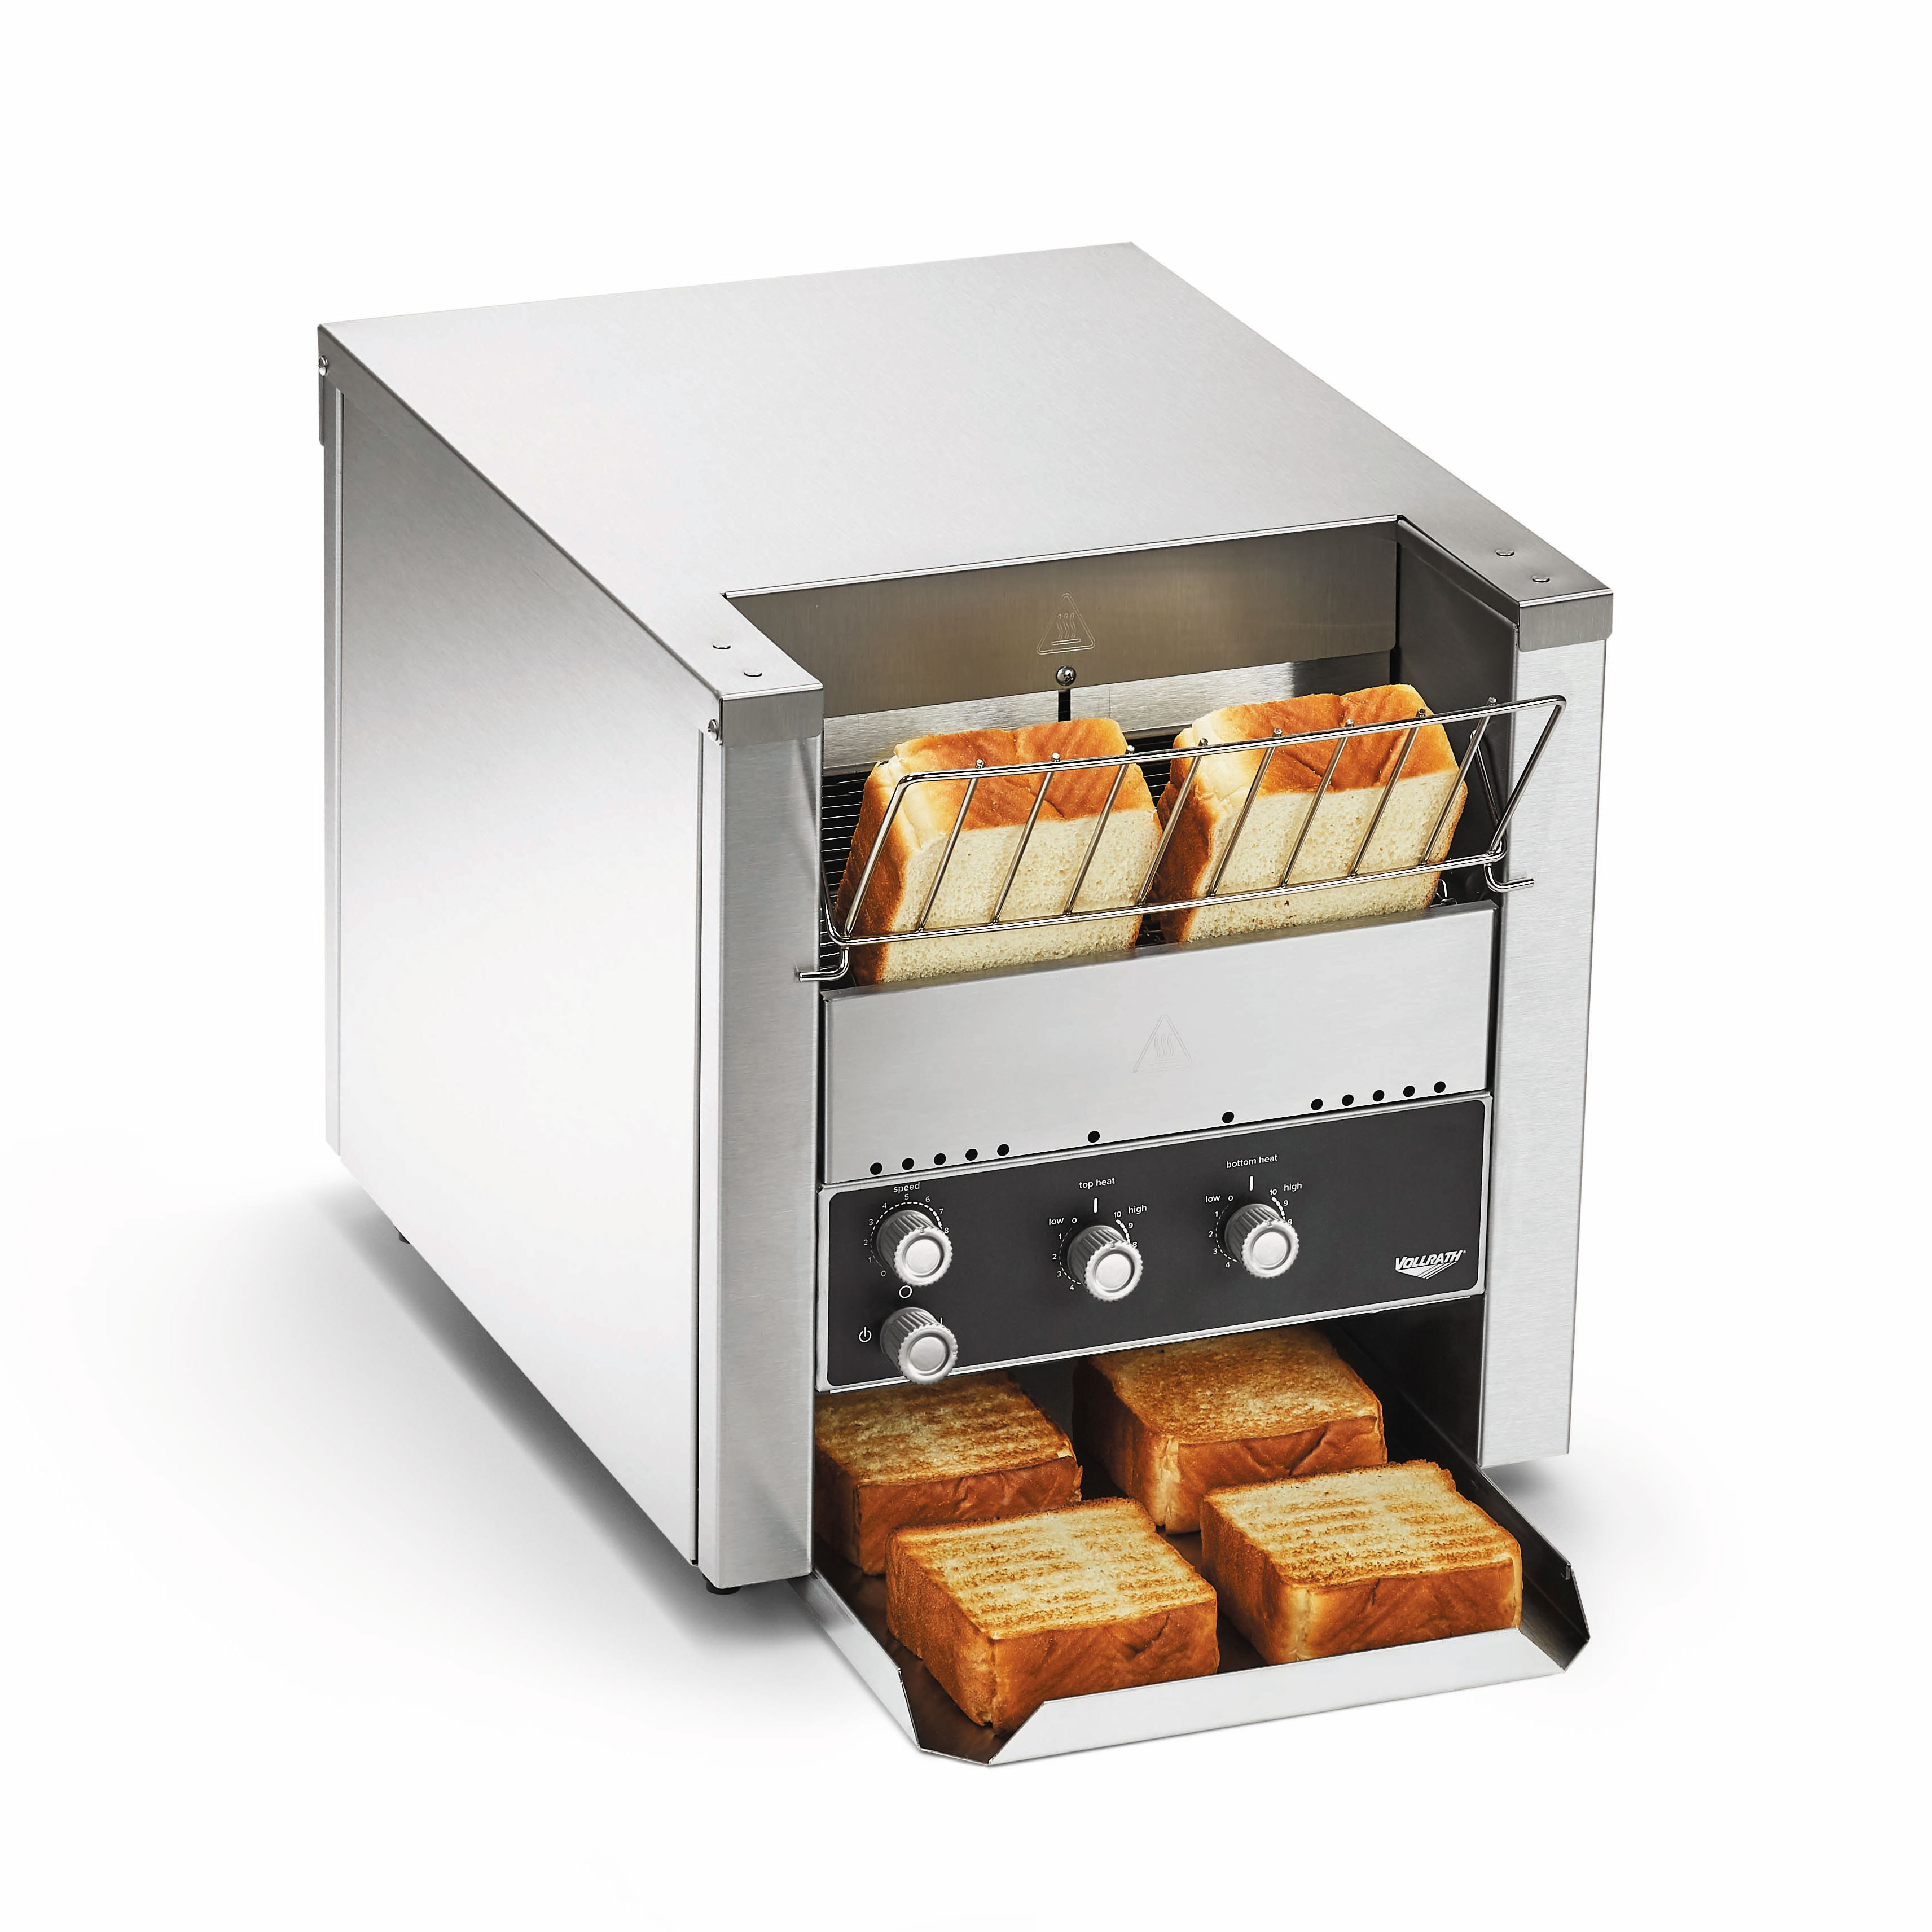 Vollrath CT4H-208550 toaster, conveyor type